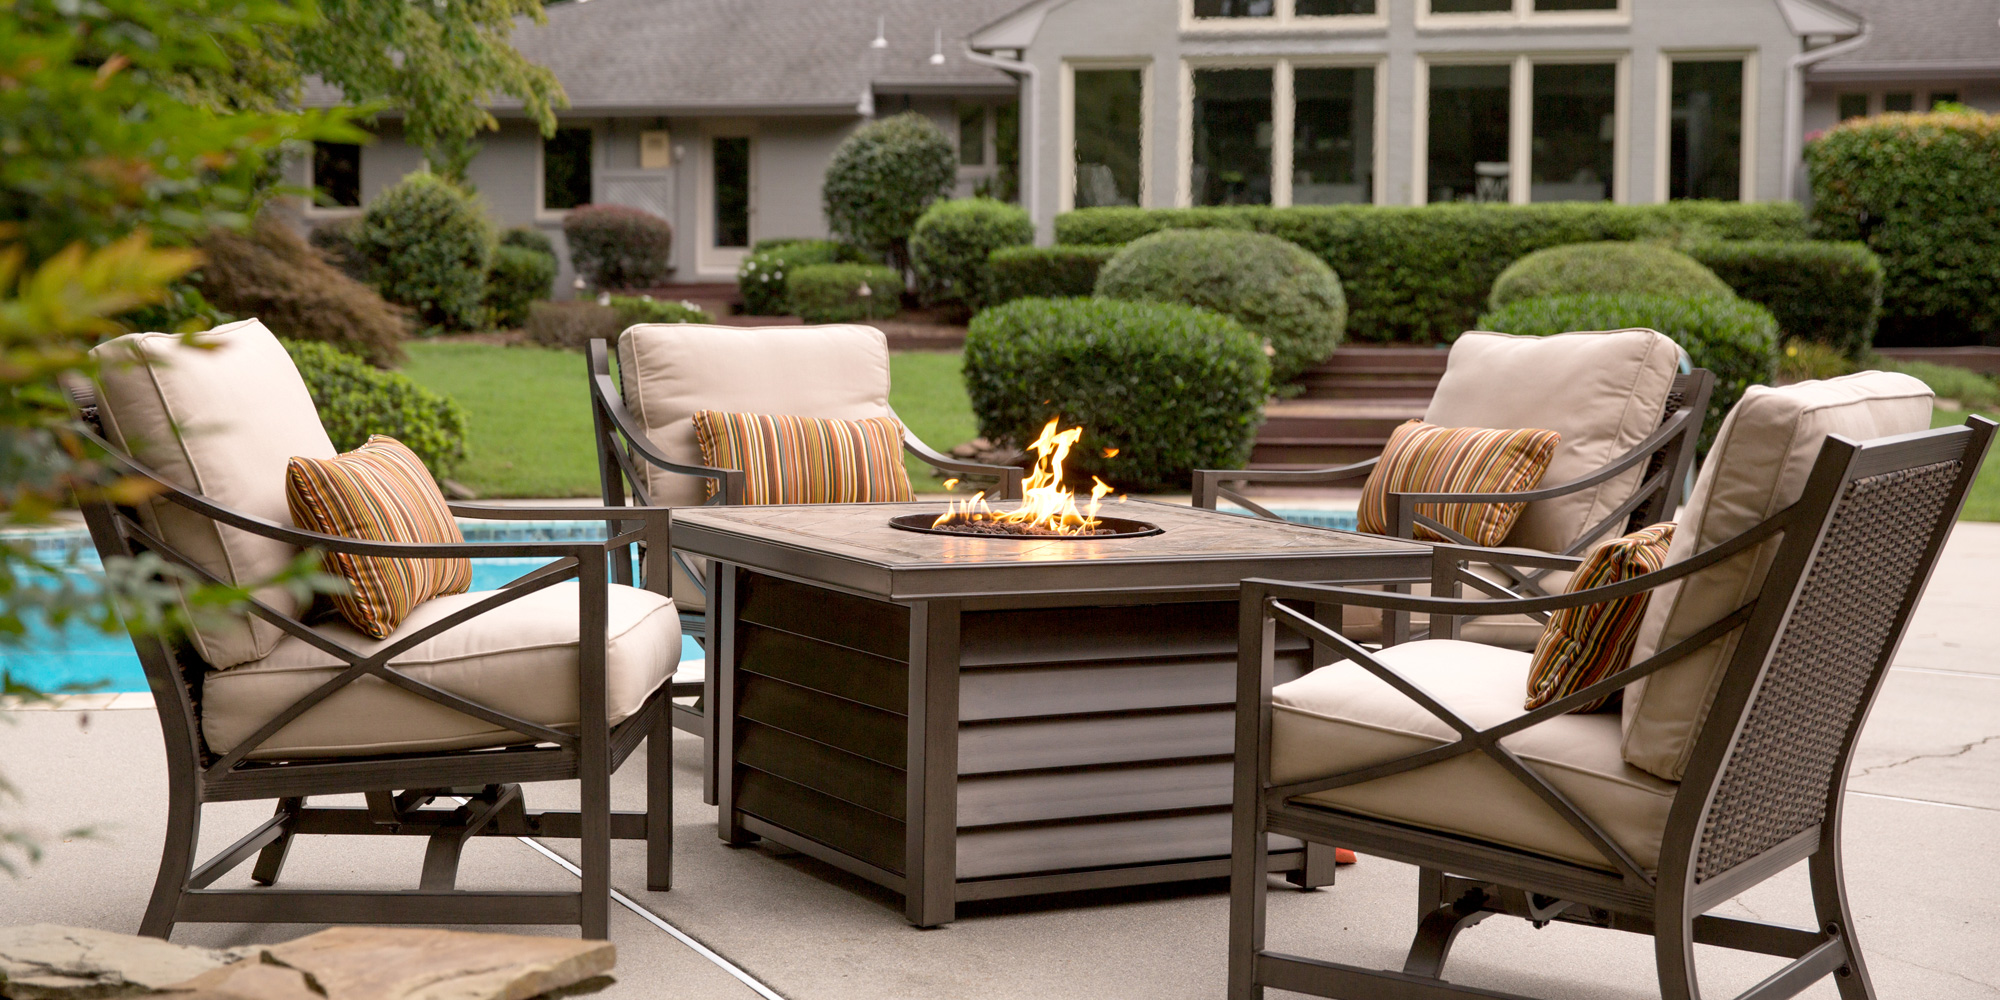 Outdoor Furniture, Home Decor, Holiday Decorations, Garden